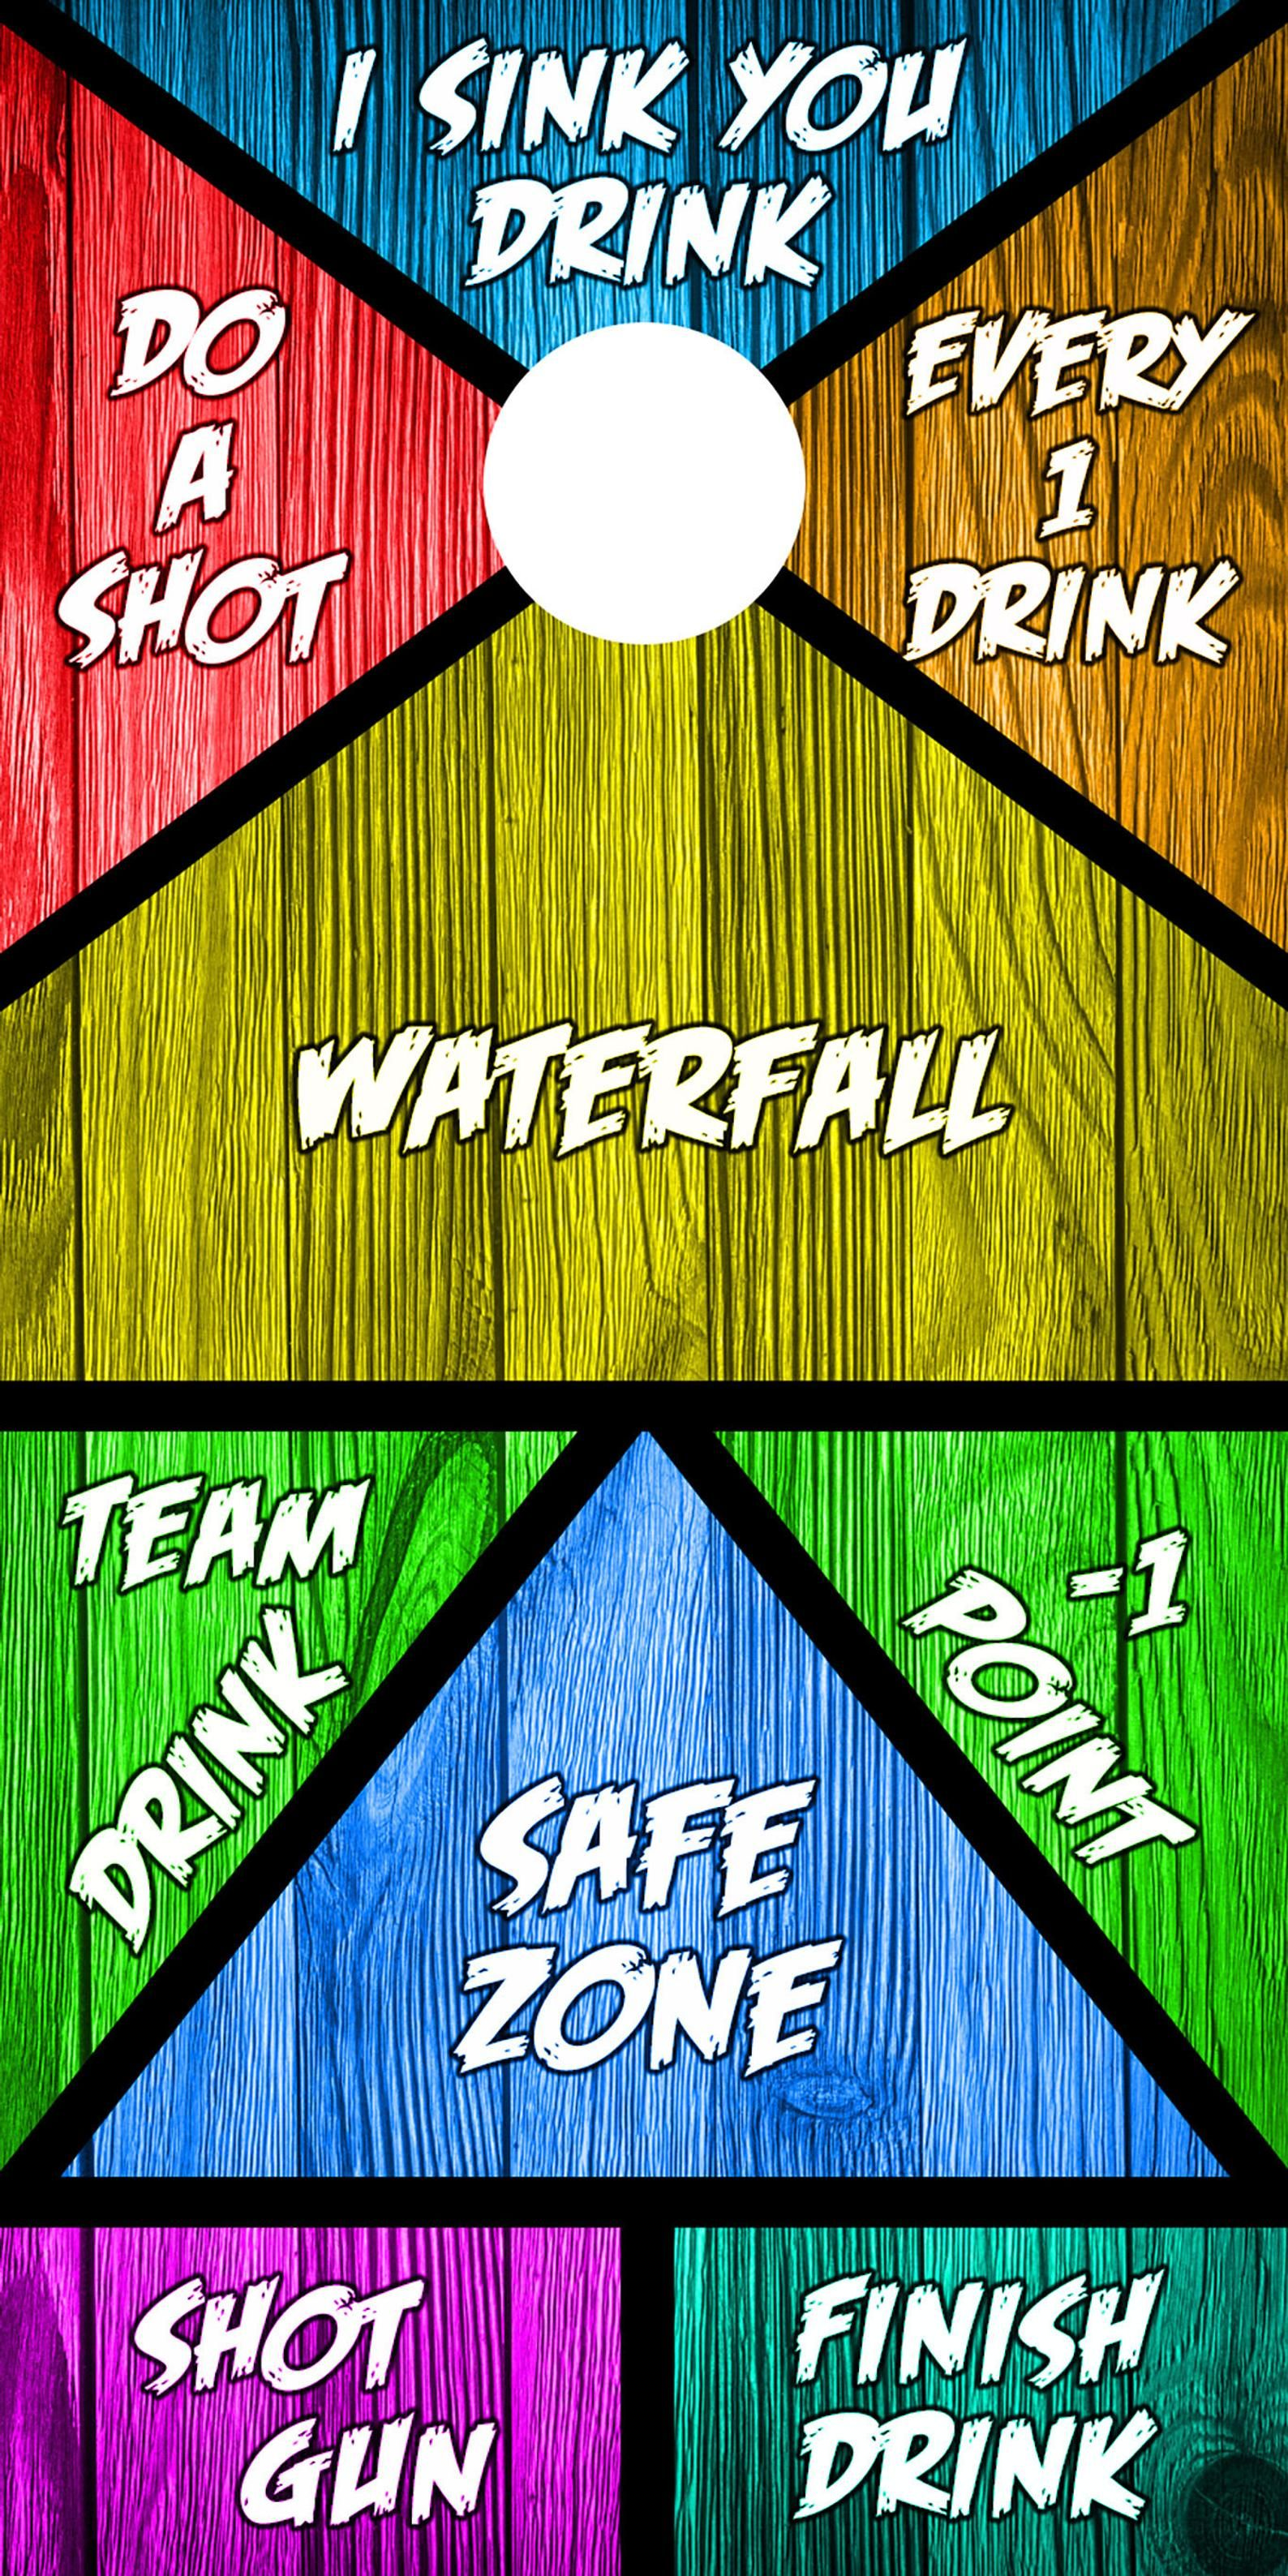 Corn hole drinking game vinyl wrap decal set of 2 etsy